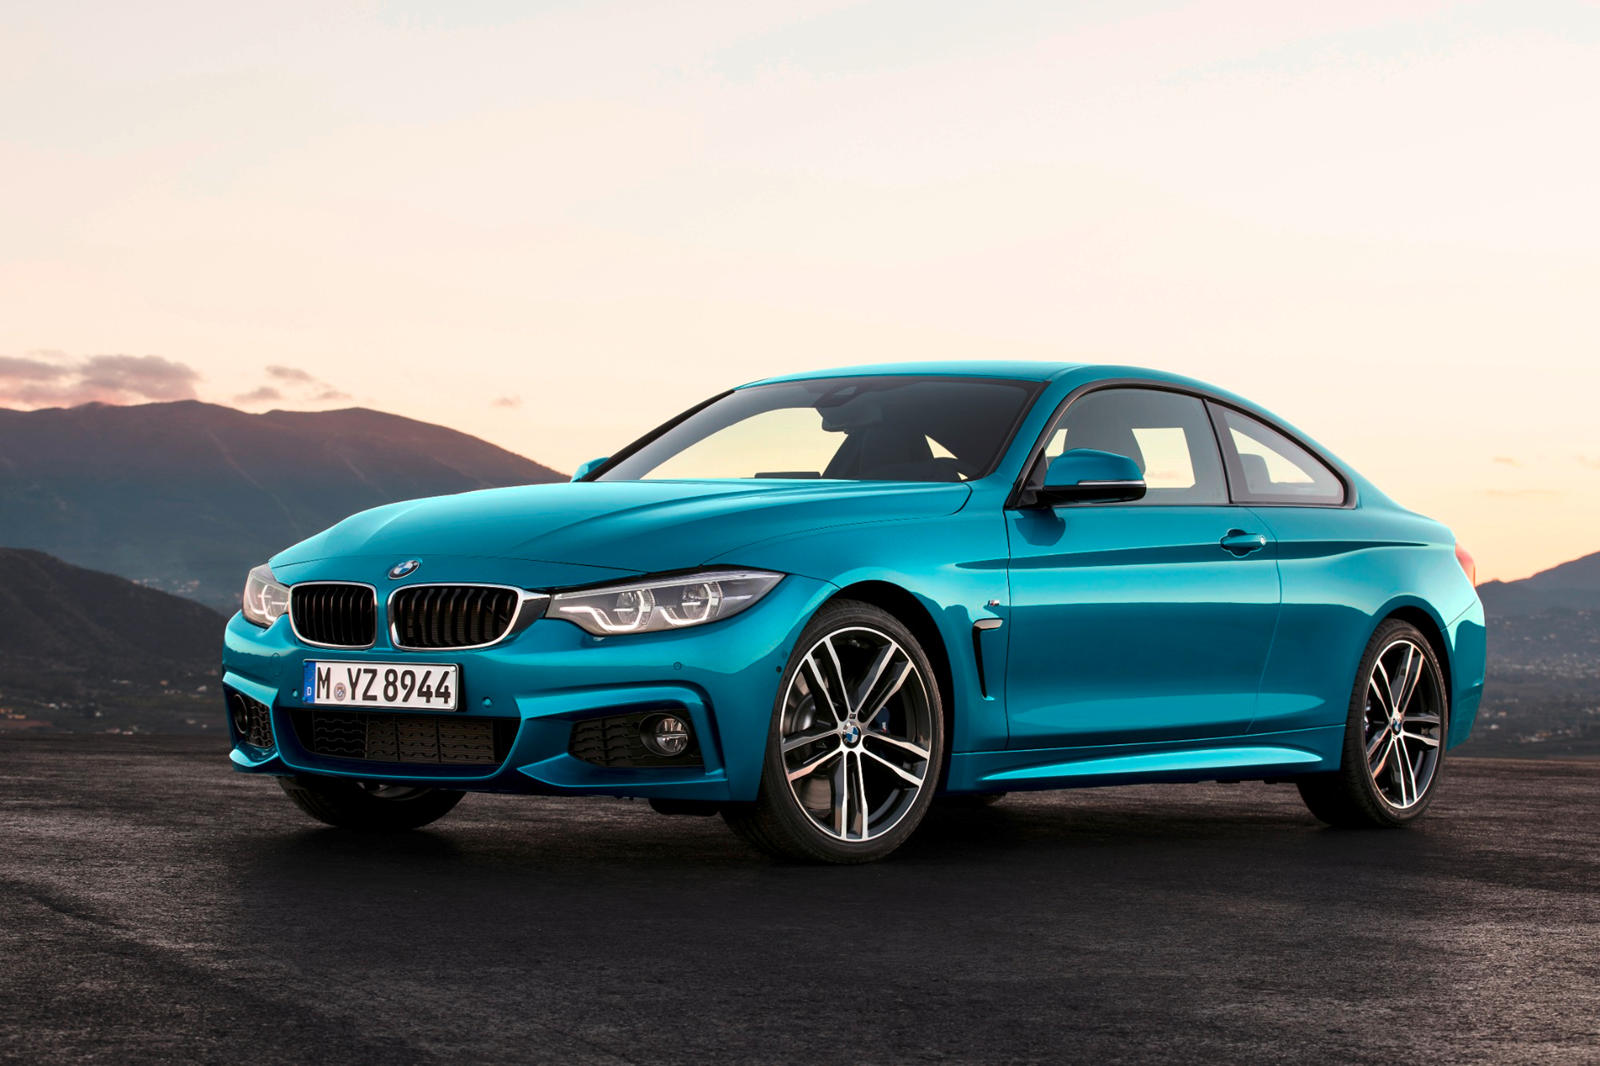 2020 BMW 4 Series Coupe Front View